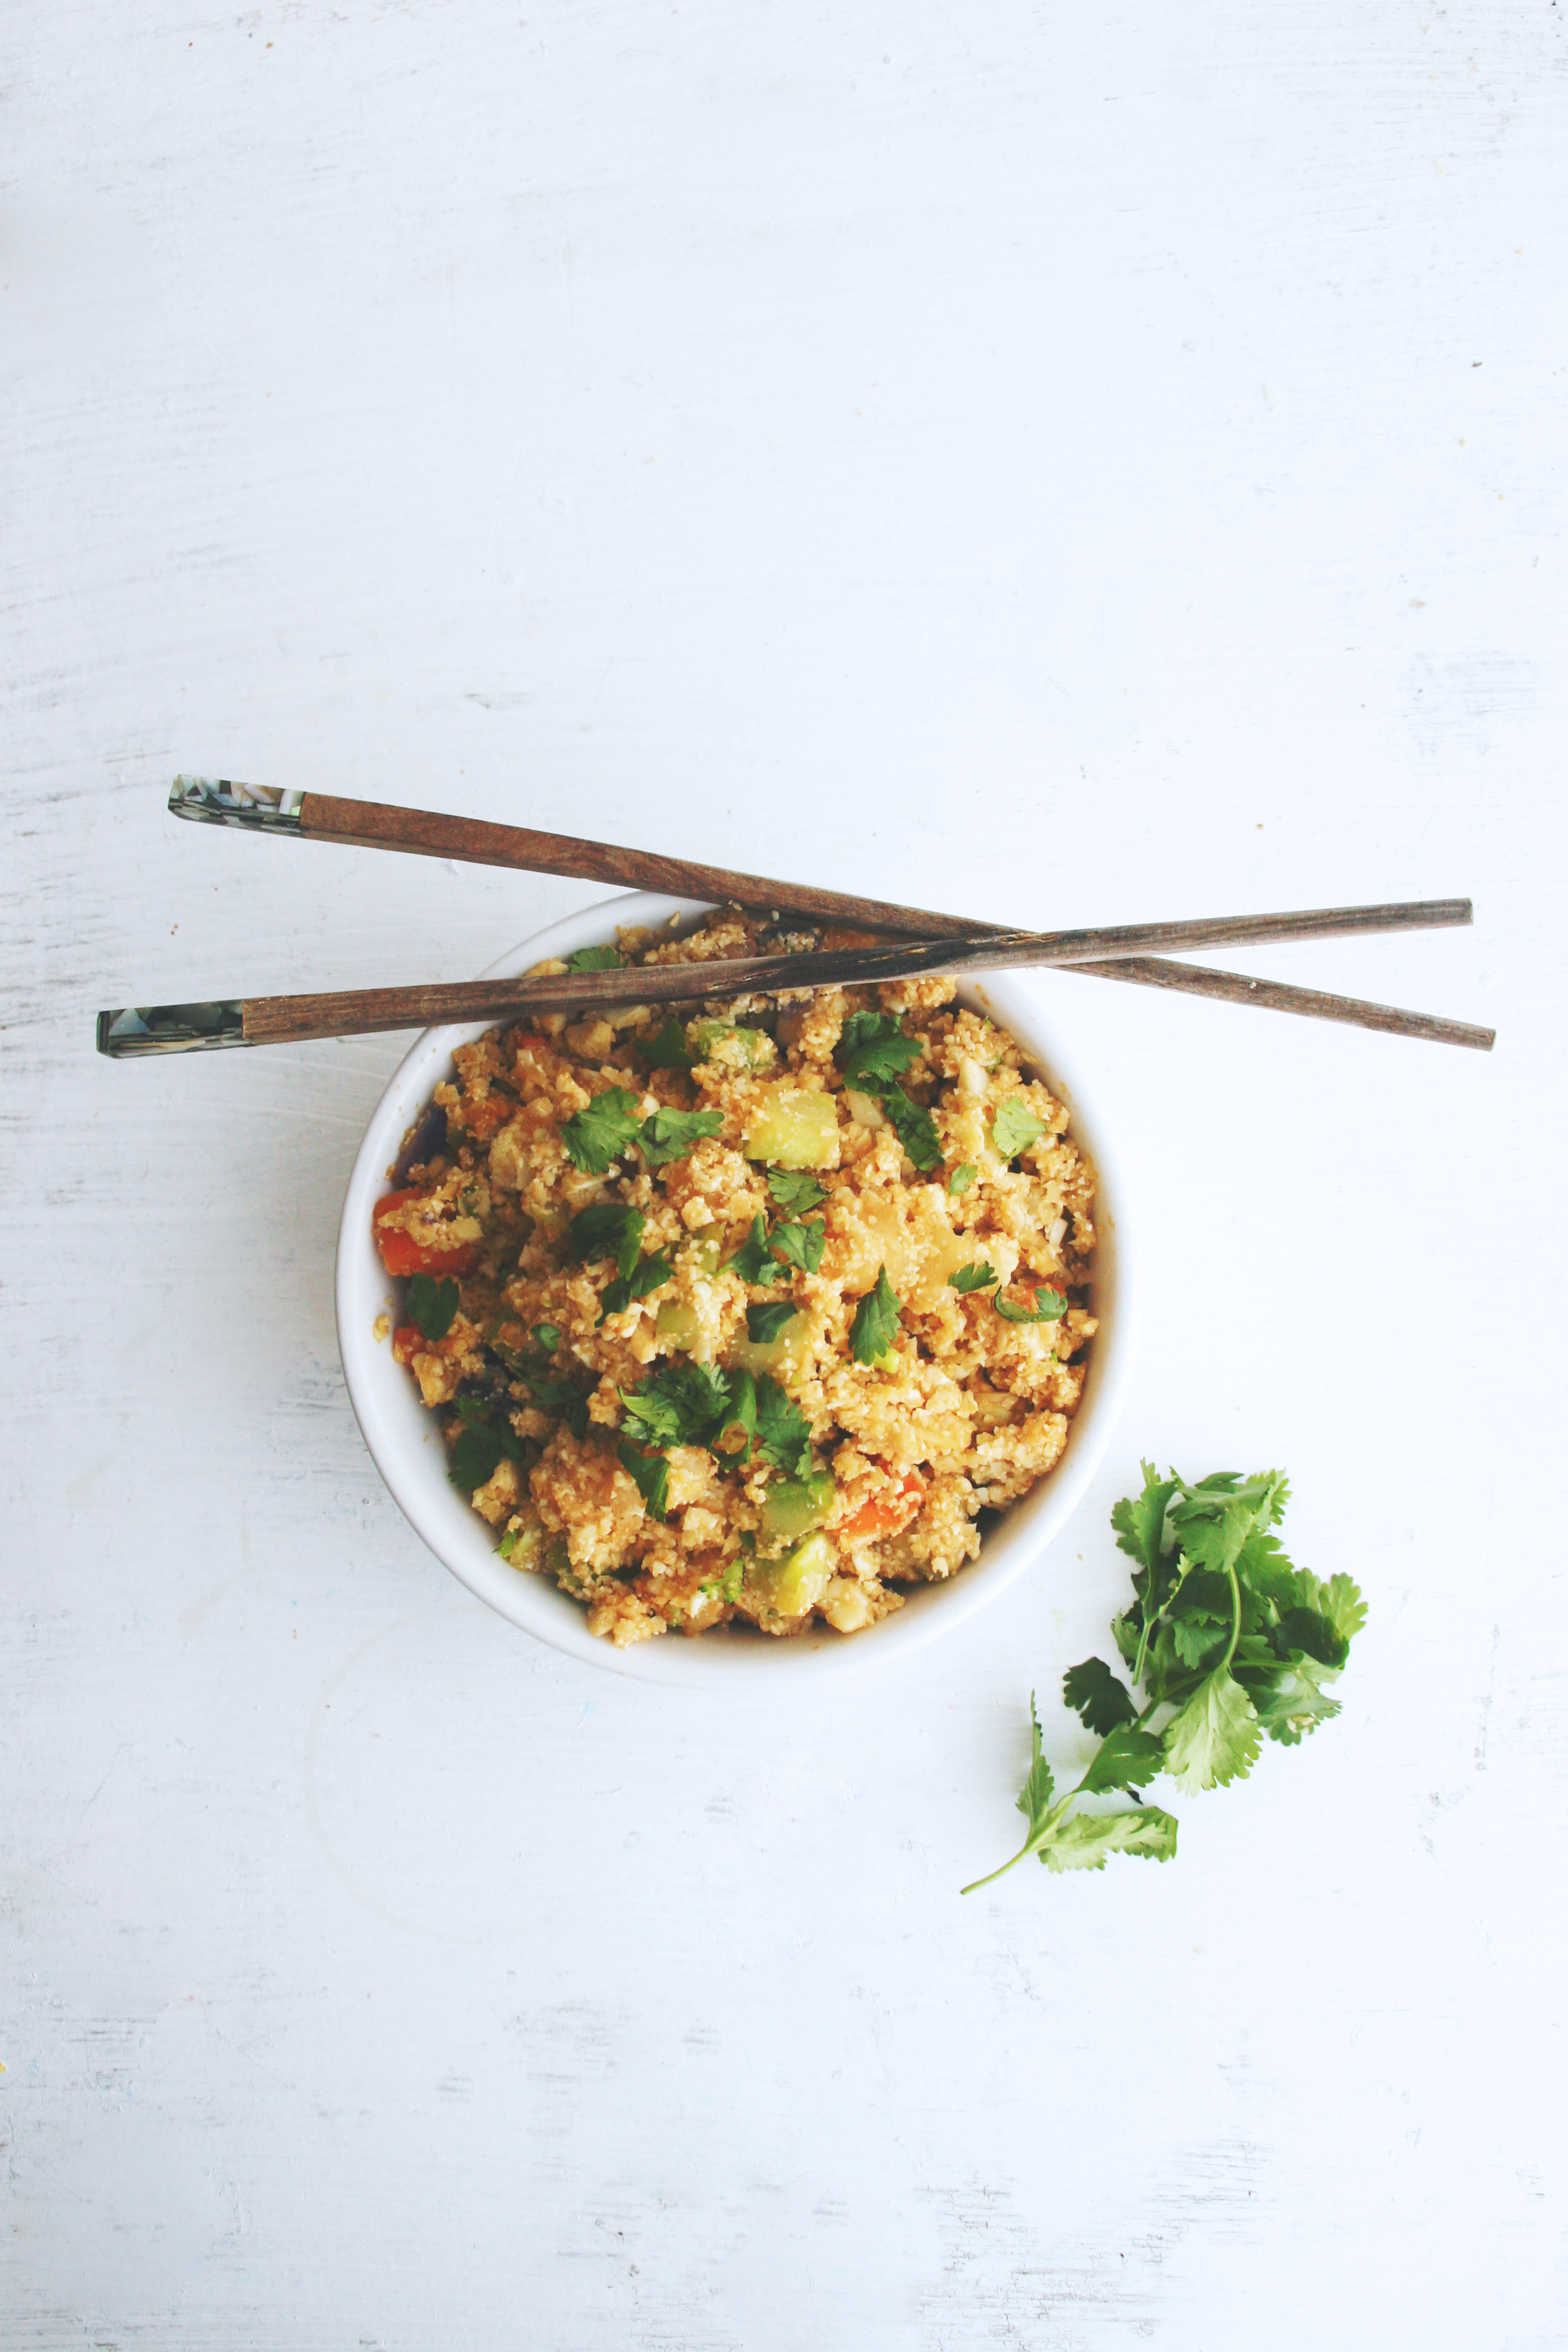 Vegan and Gluten-free Cauliflower Fried Rice